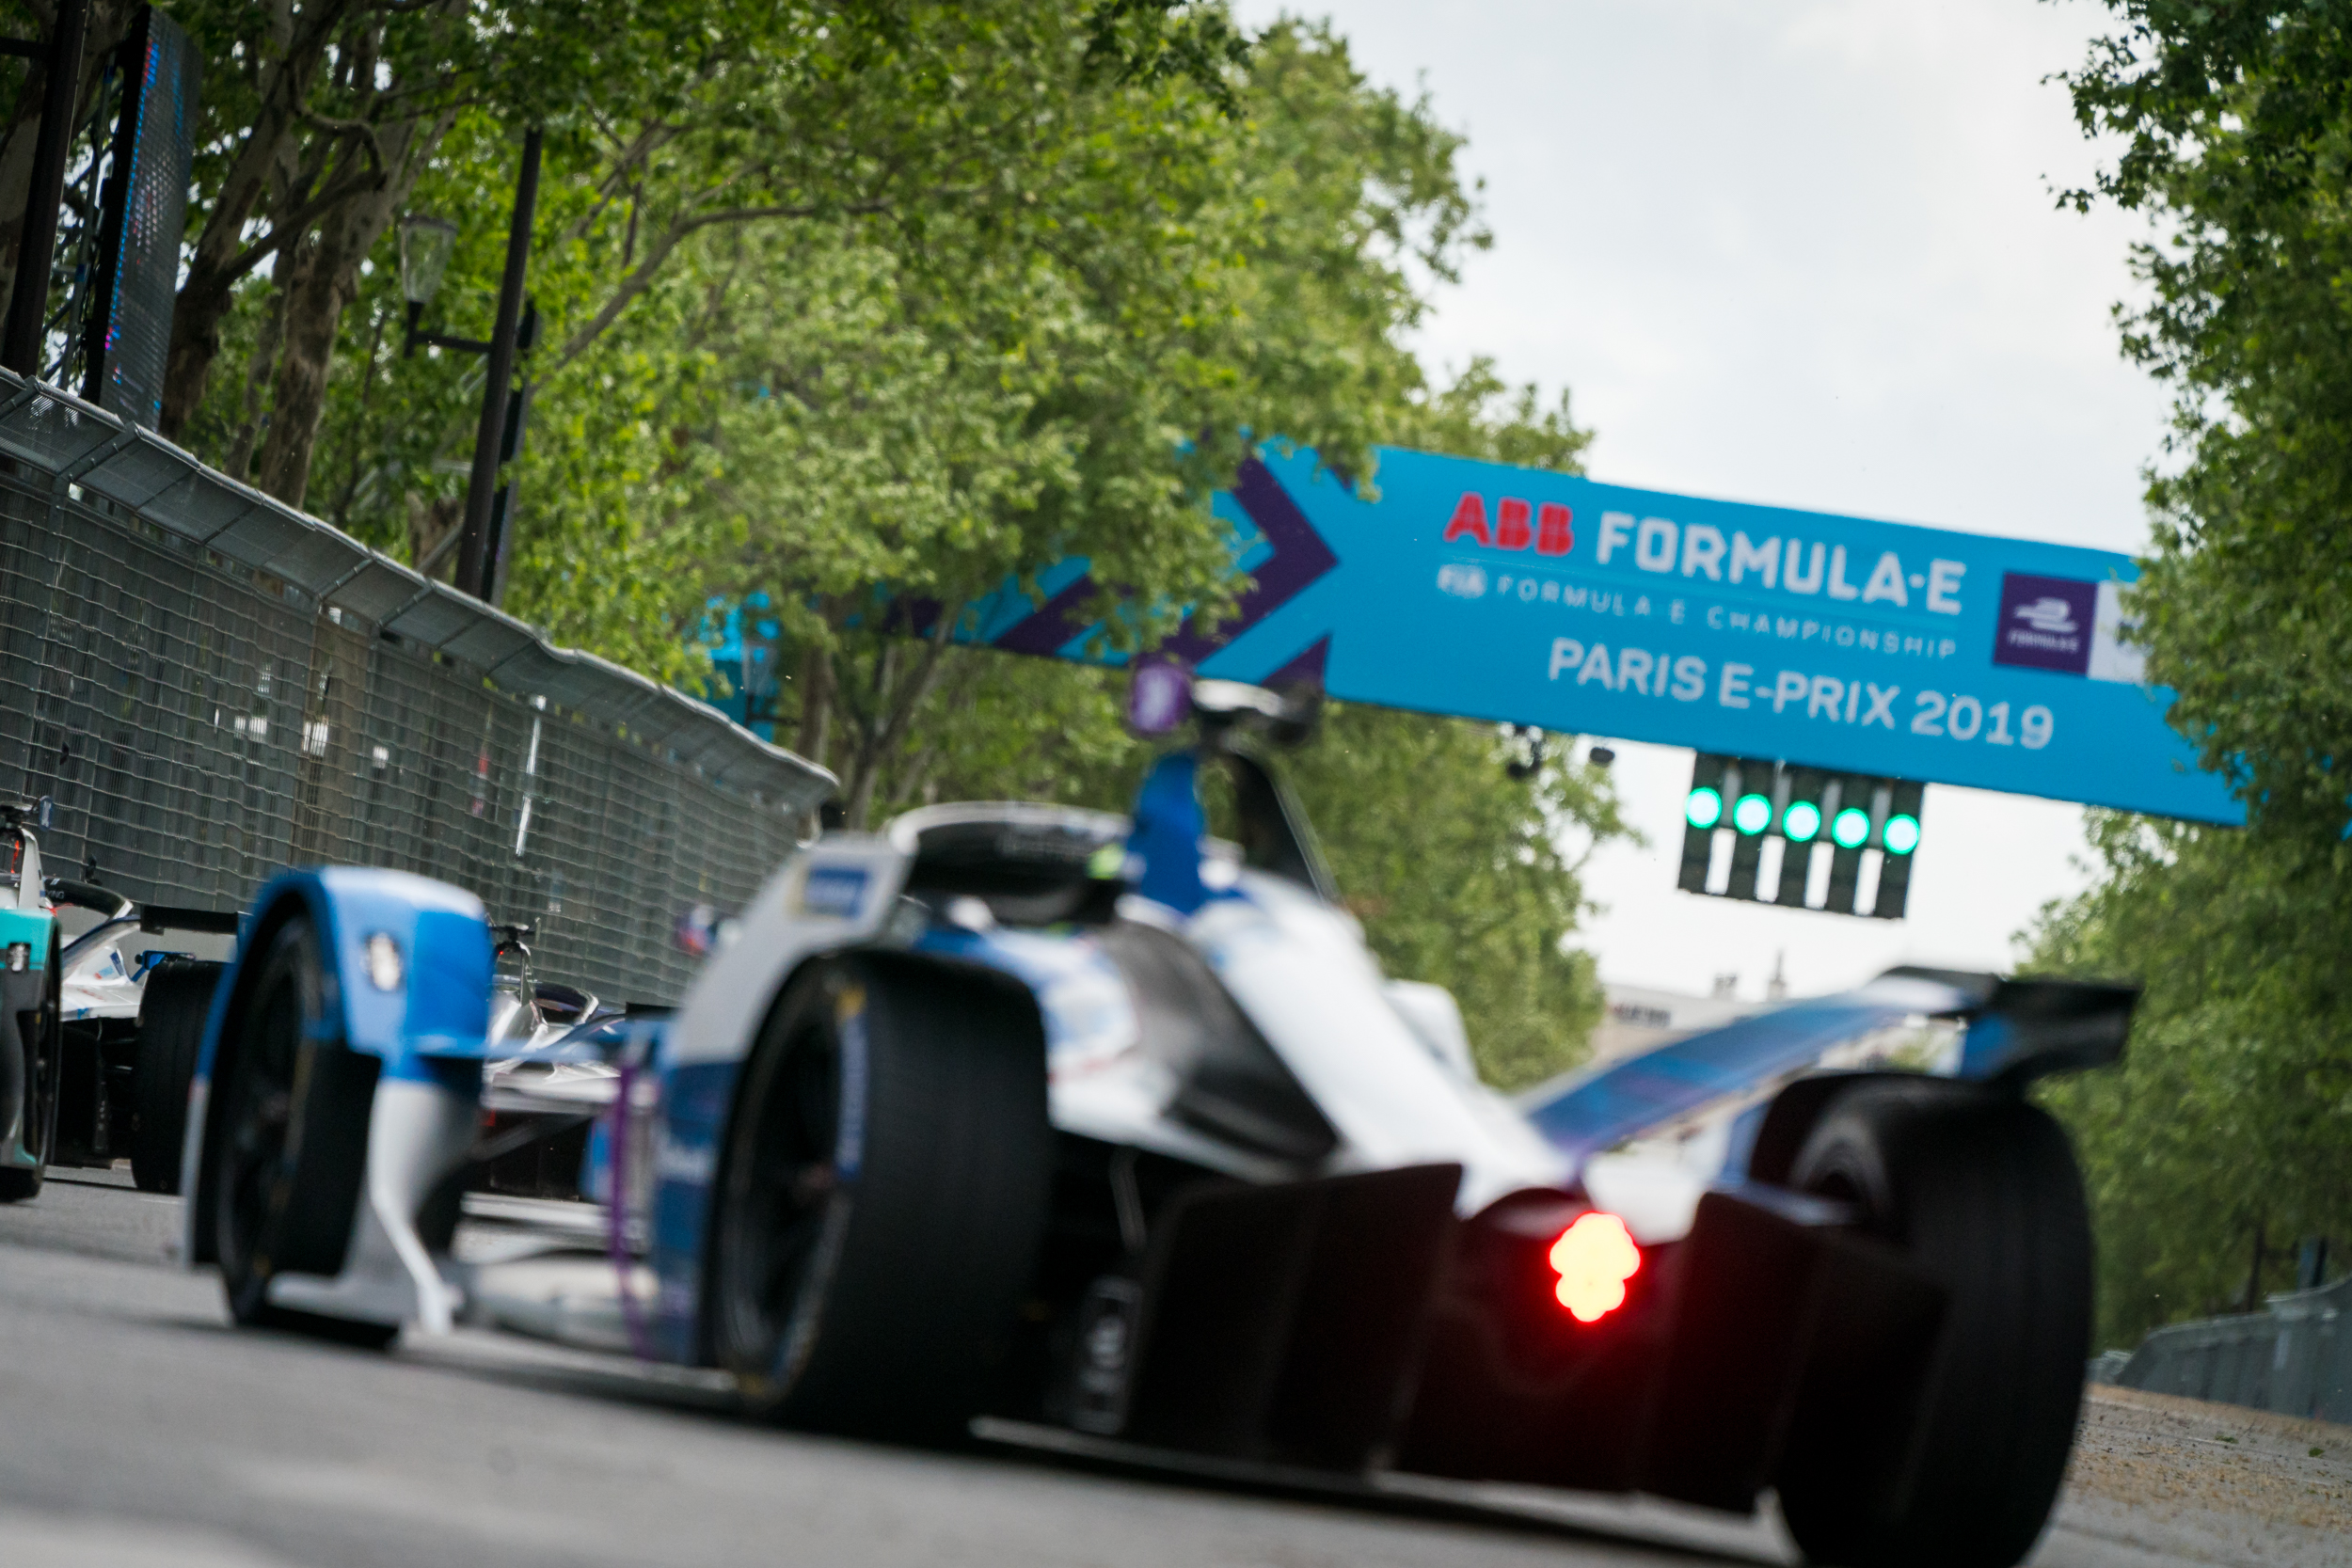 BMW i_Formula E Paris 2019_26&27-04-19_Florian Leger_SHARE & DARE_HD_N°-373.jpg